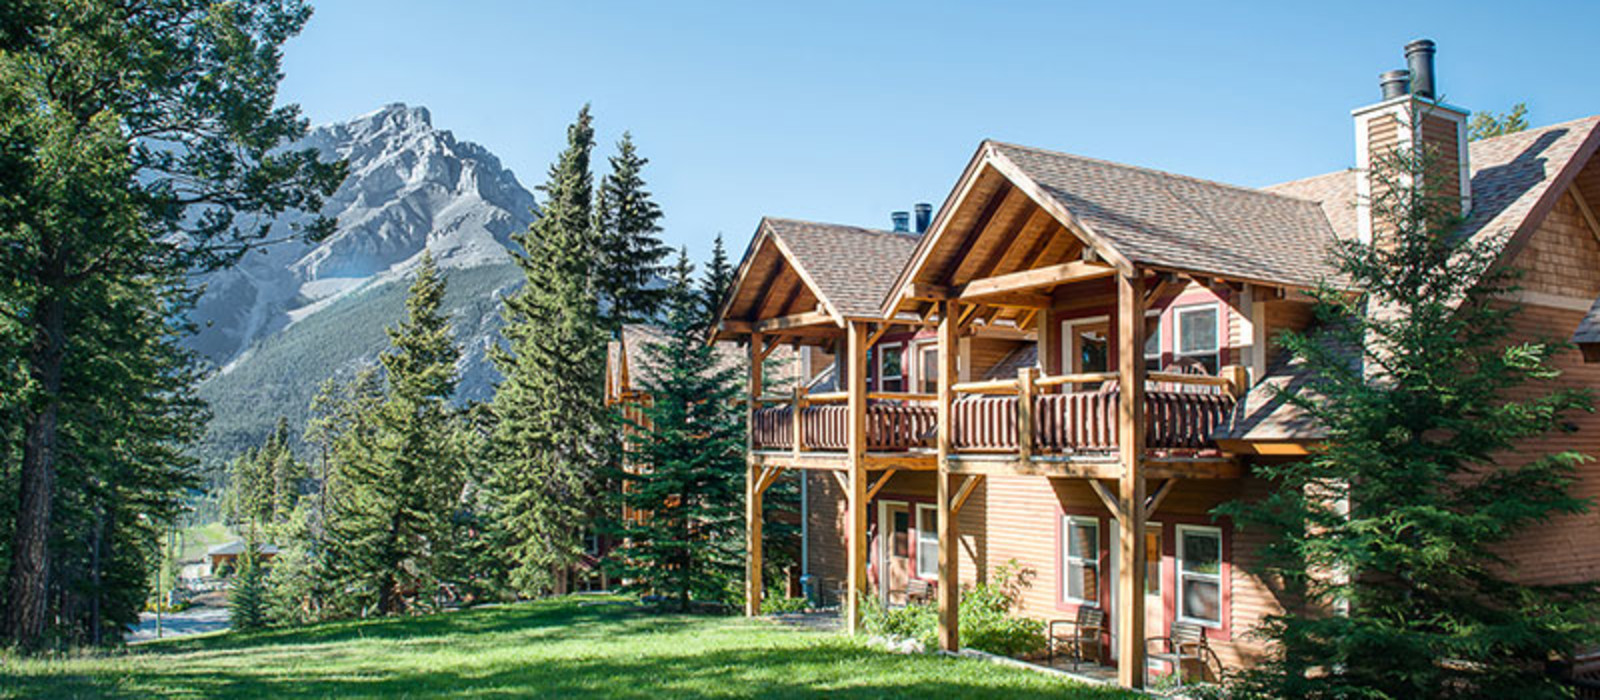 Hotel Buffalo Mountain Lodge Canada